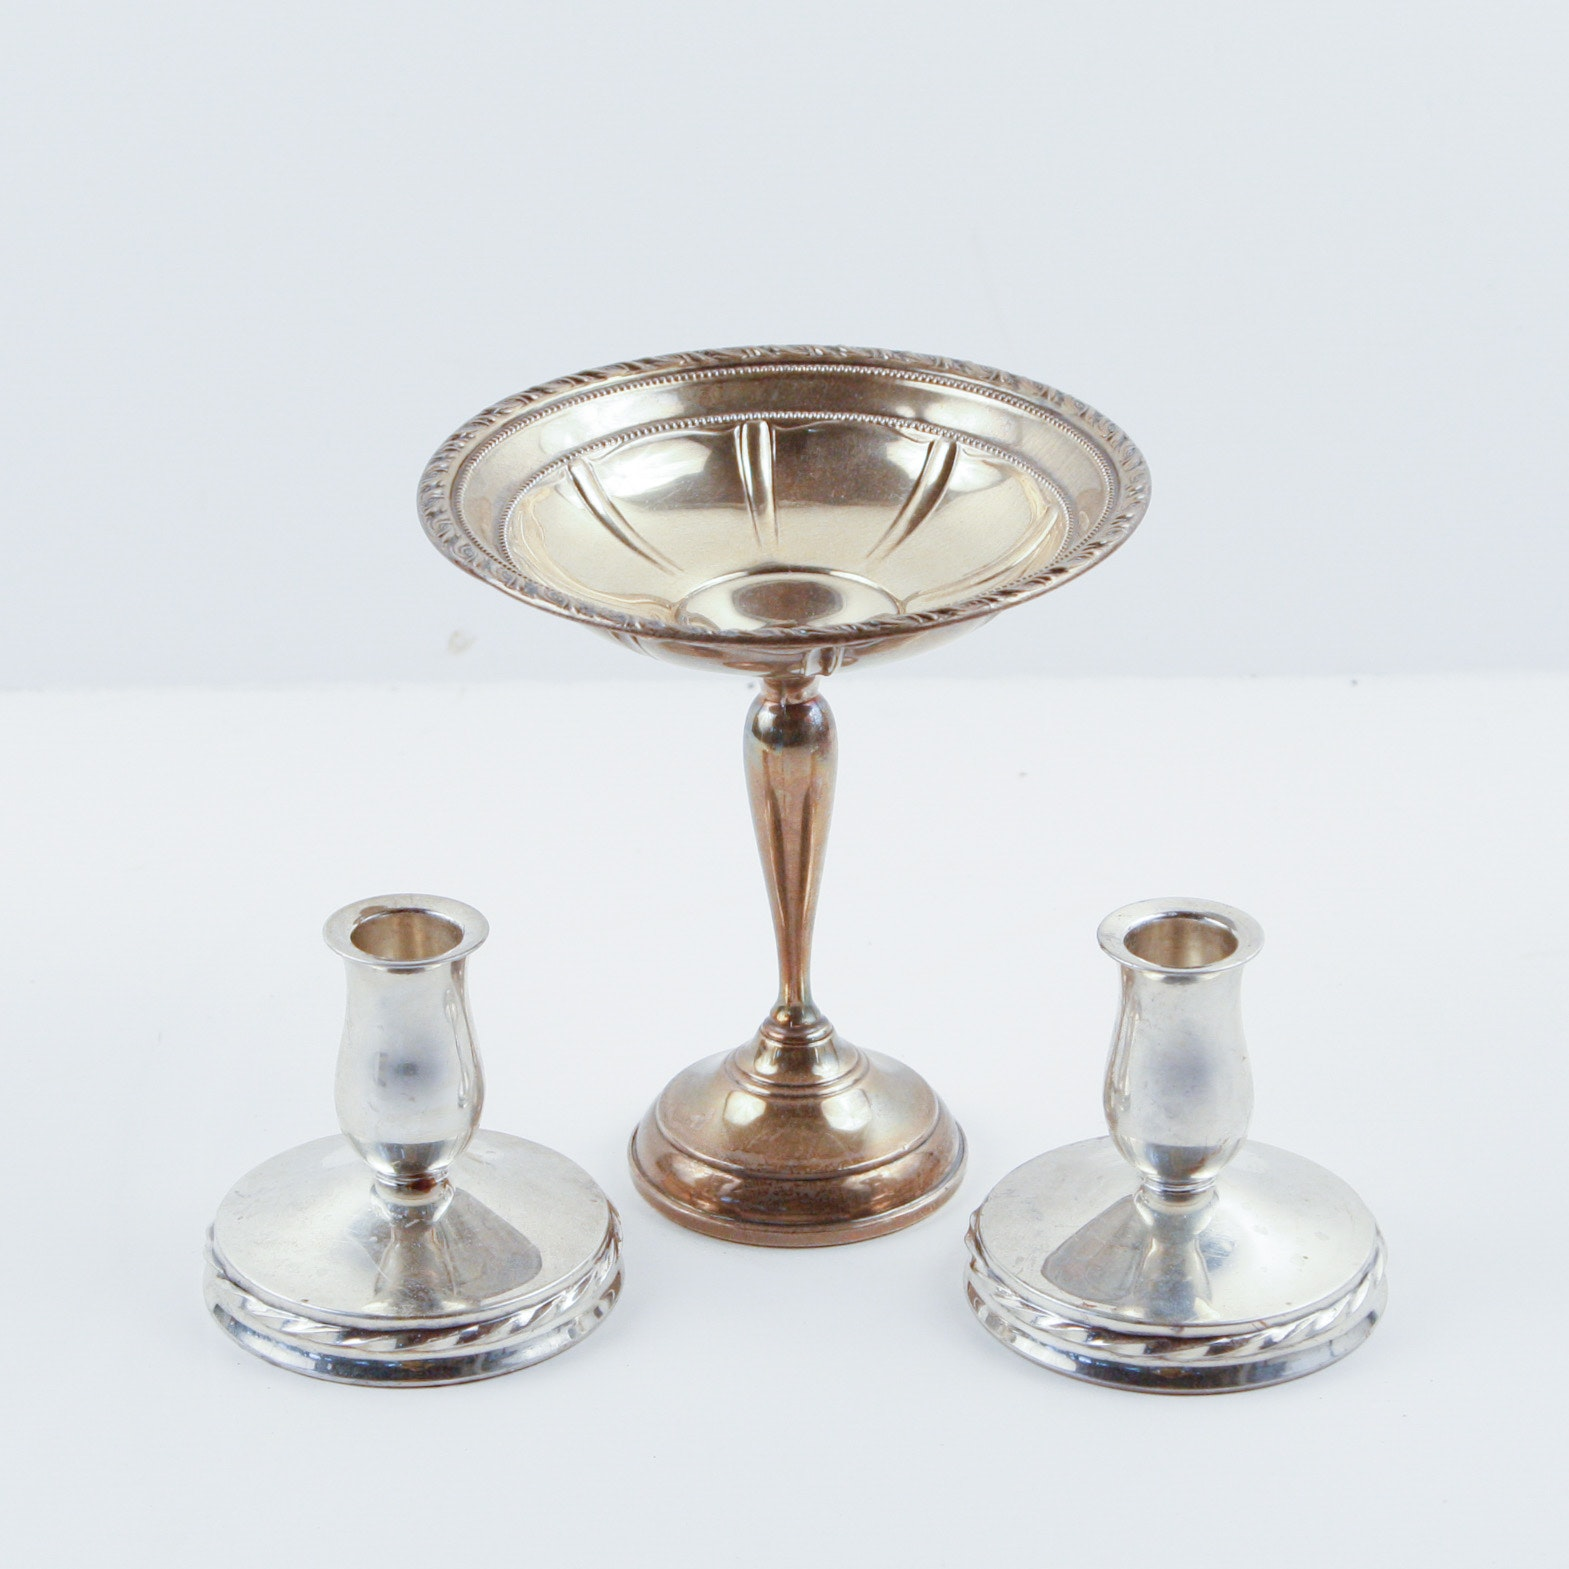 Weighted Sterling Tableware by Towle and Arnston Silver Co.